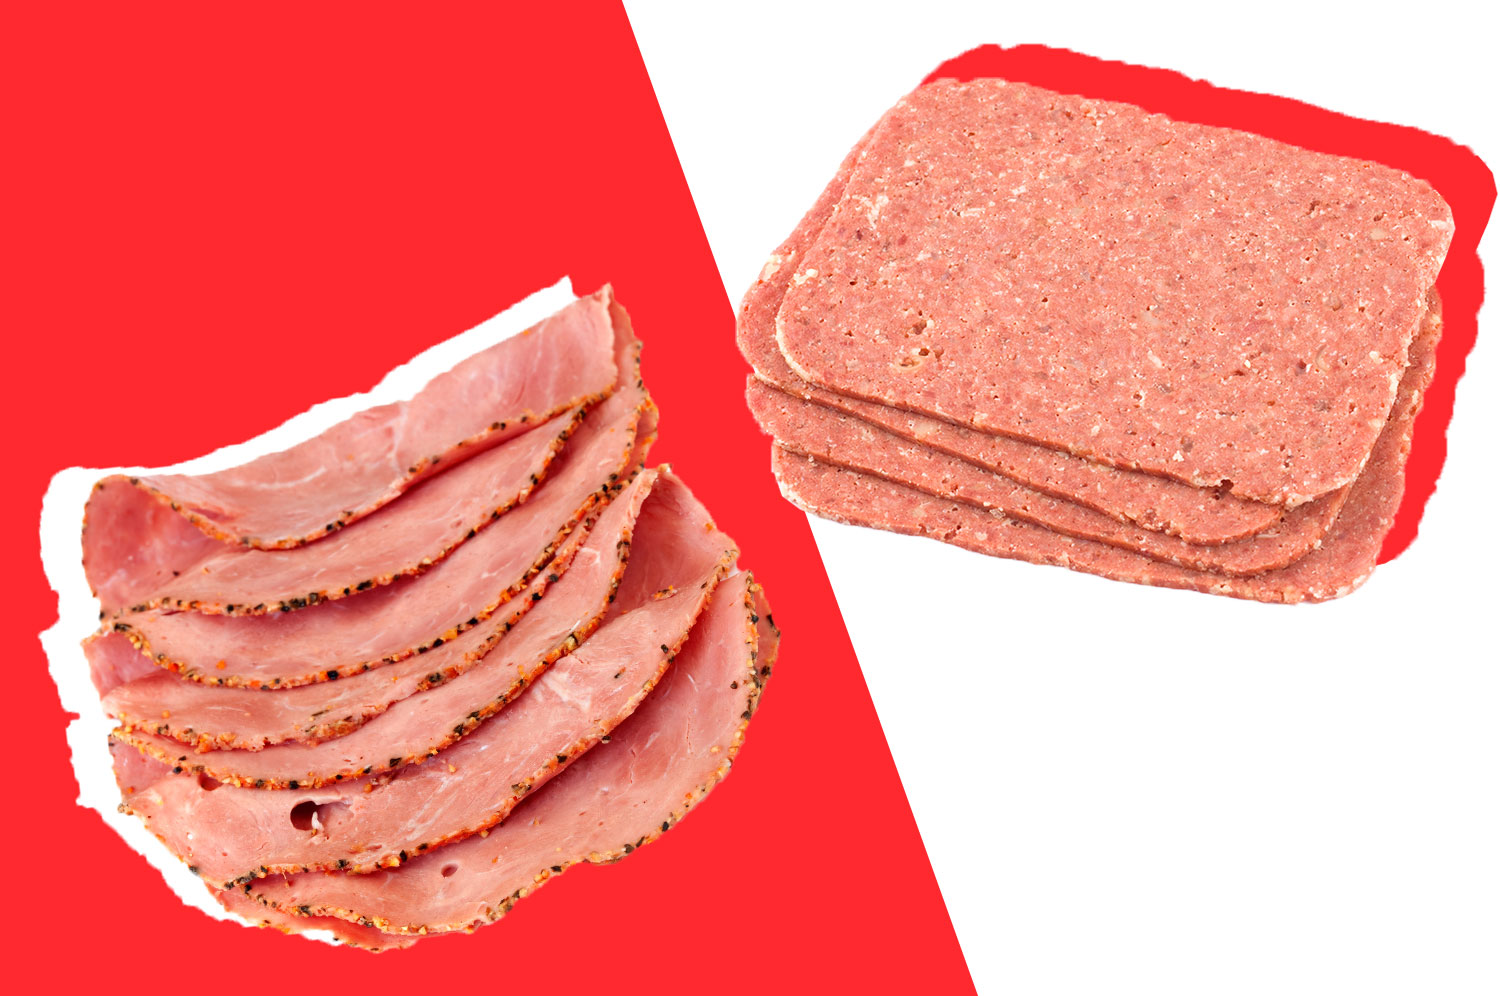 What's the Difference Between Corned Beef and Pastrami?